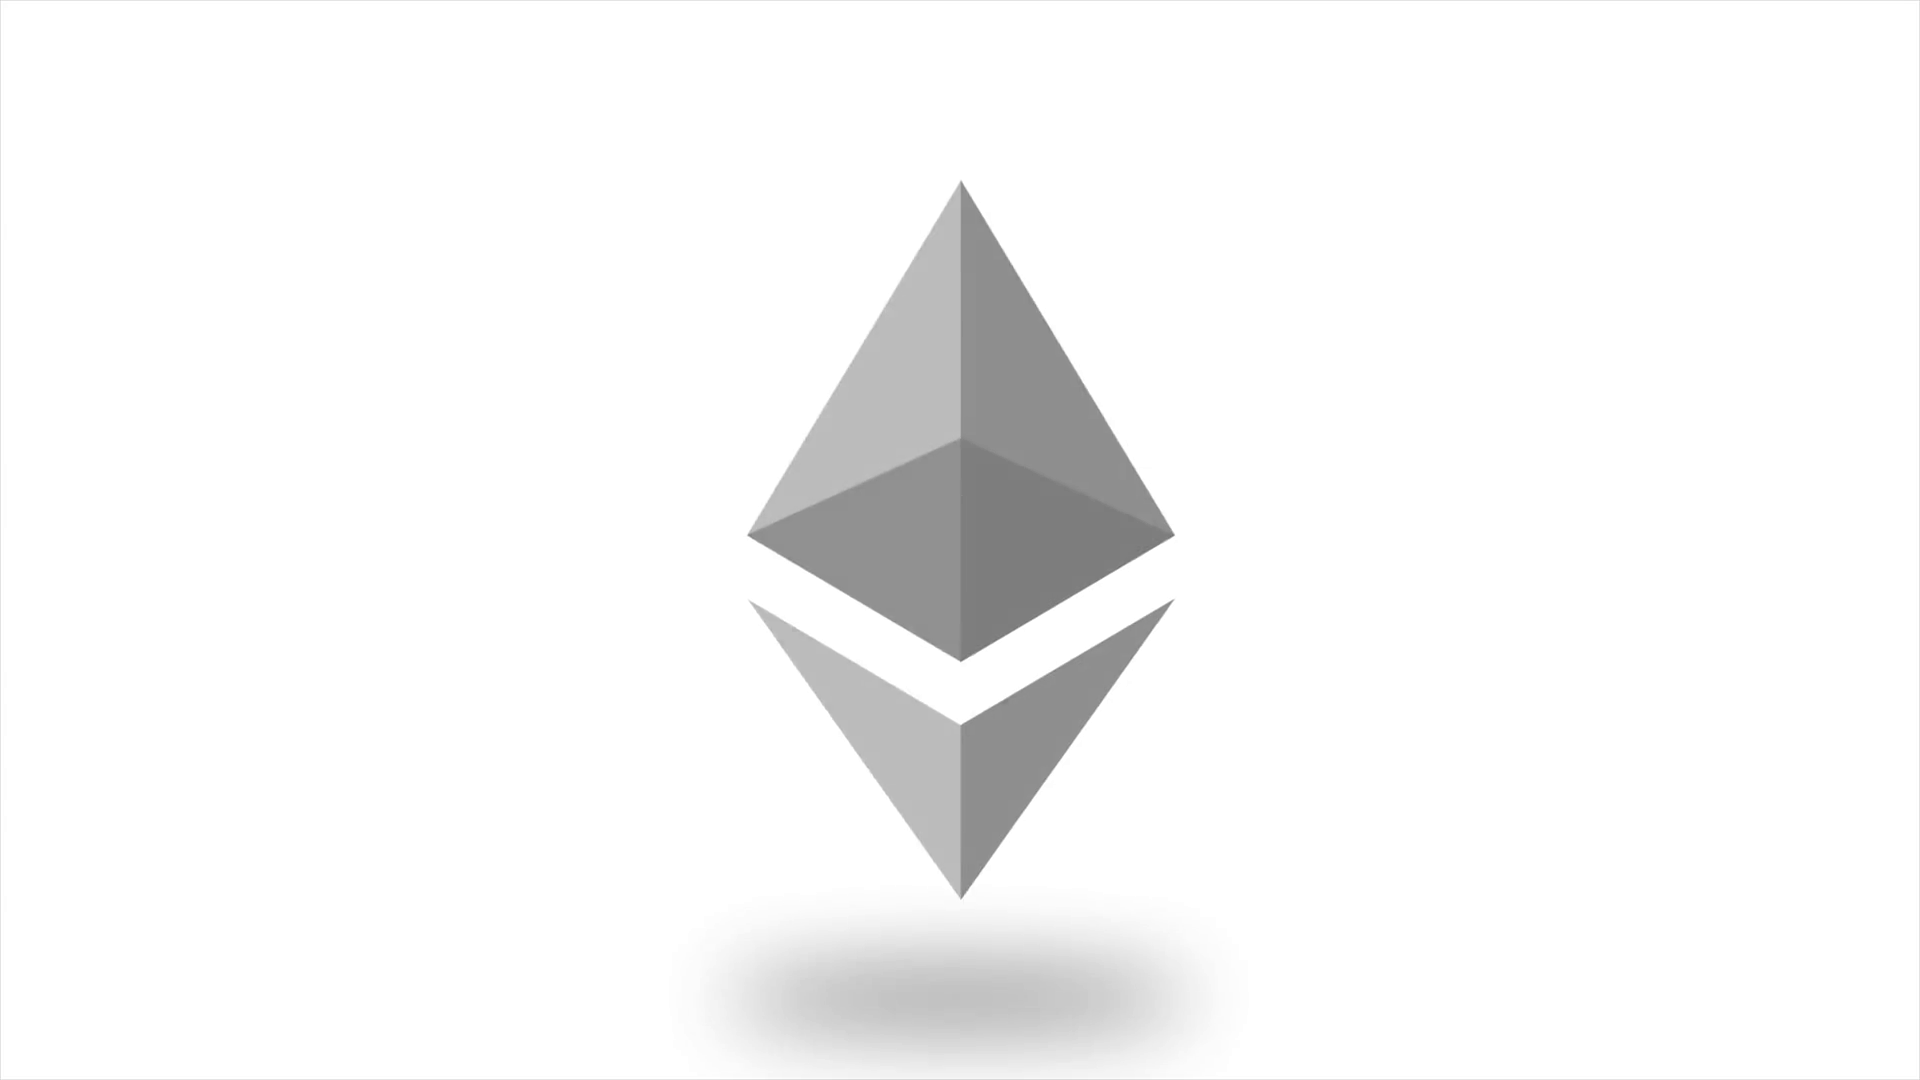 Ethereum Png 98 images in Collection Page 2 1920x1080